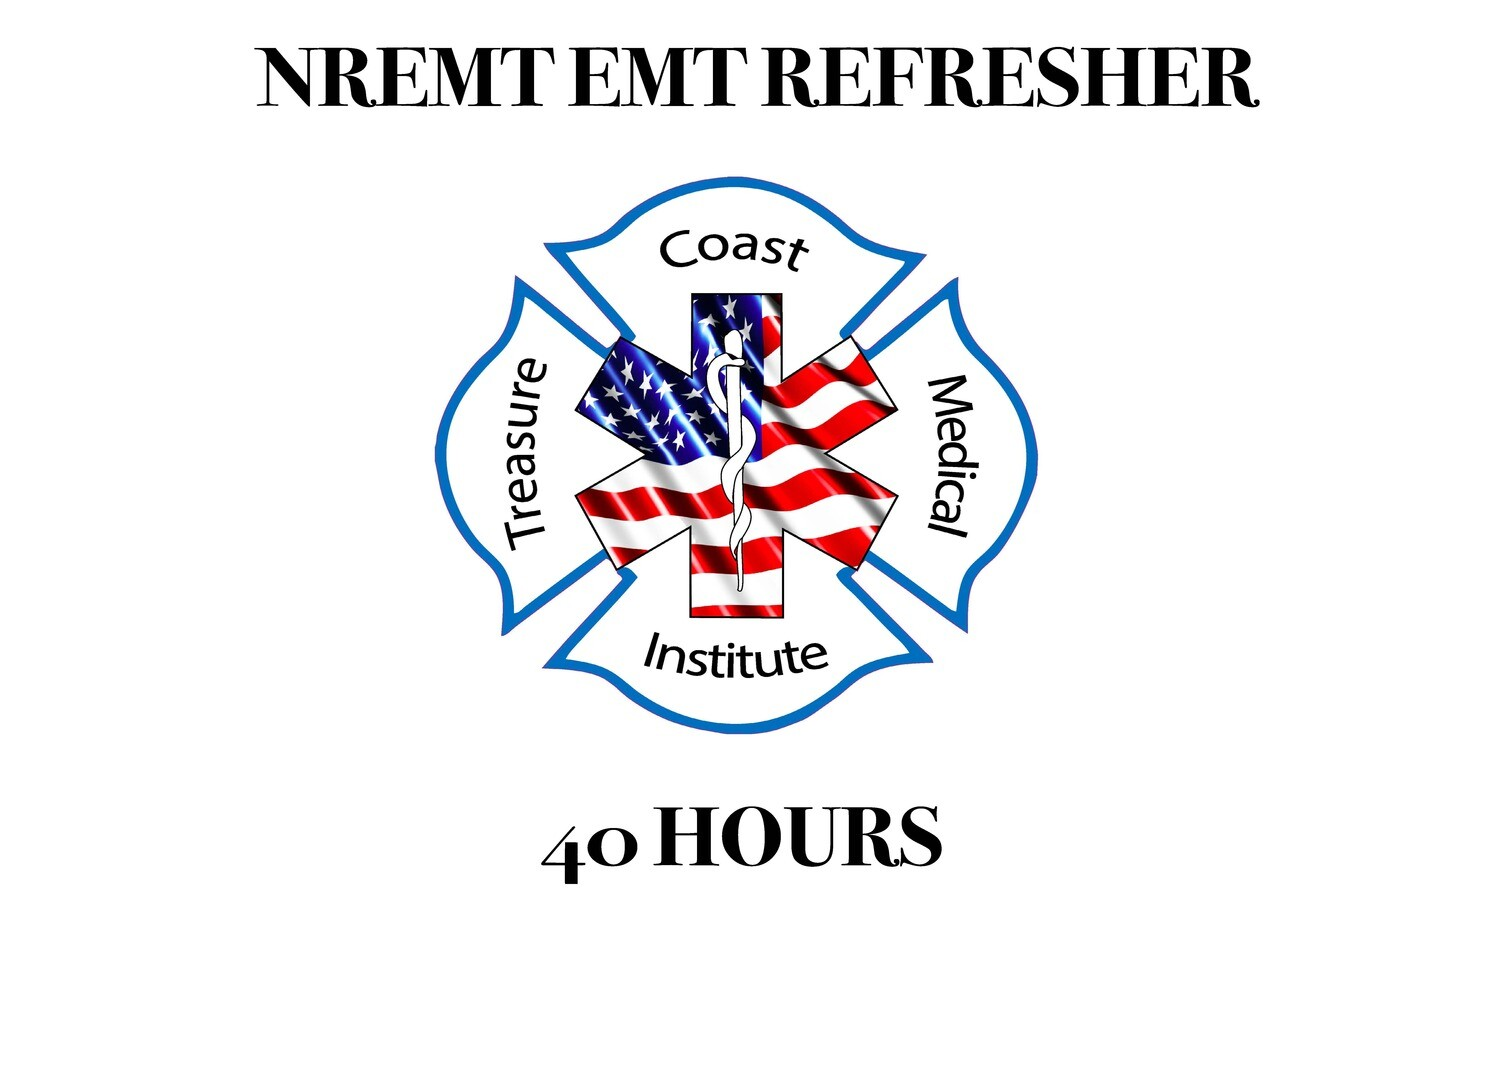 NREMT EMT Refresher (non-refundable)